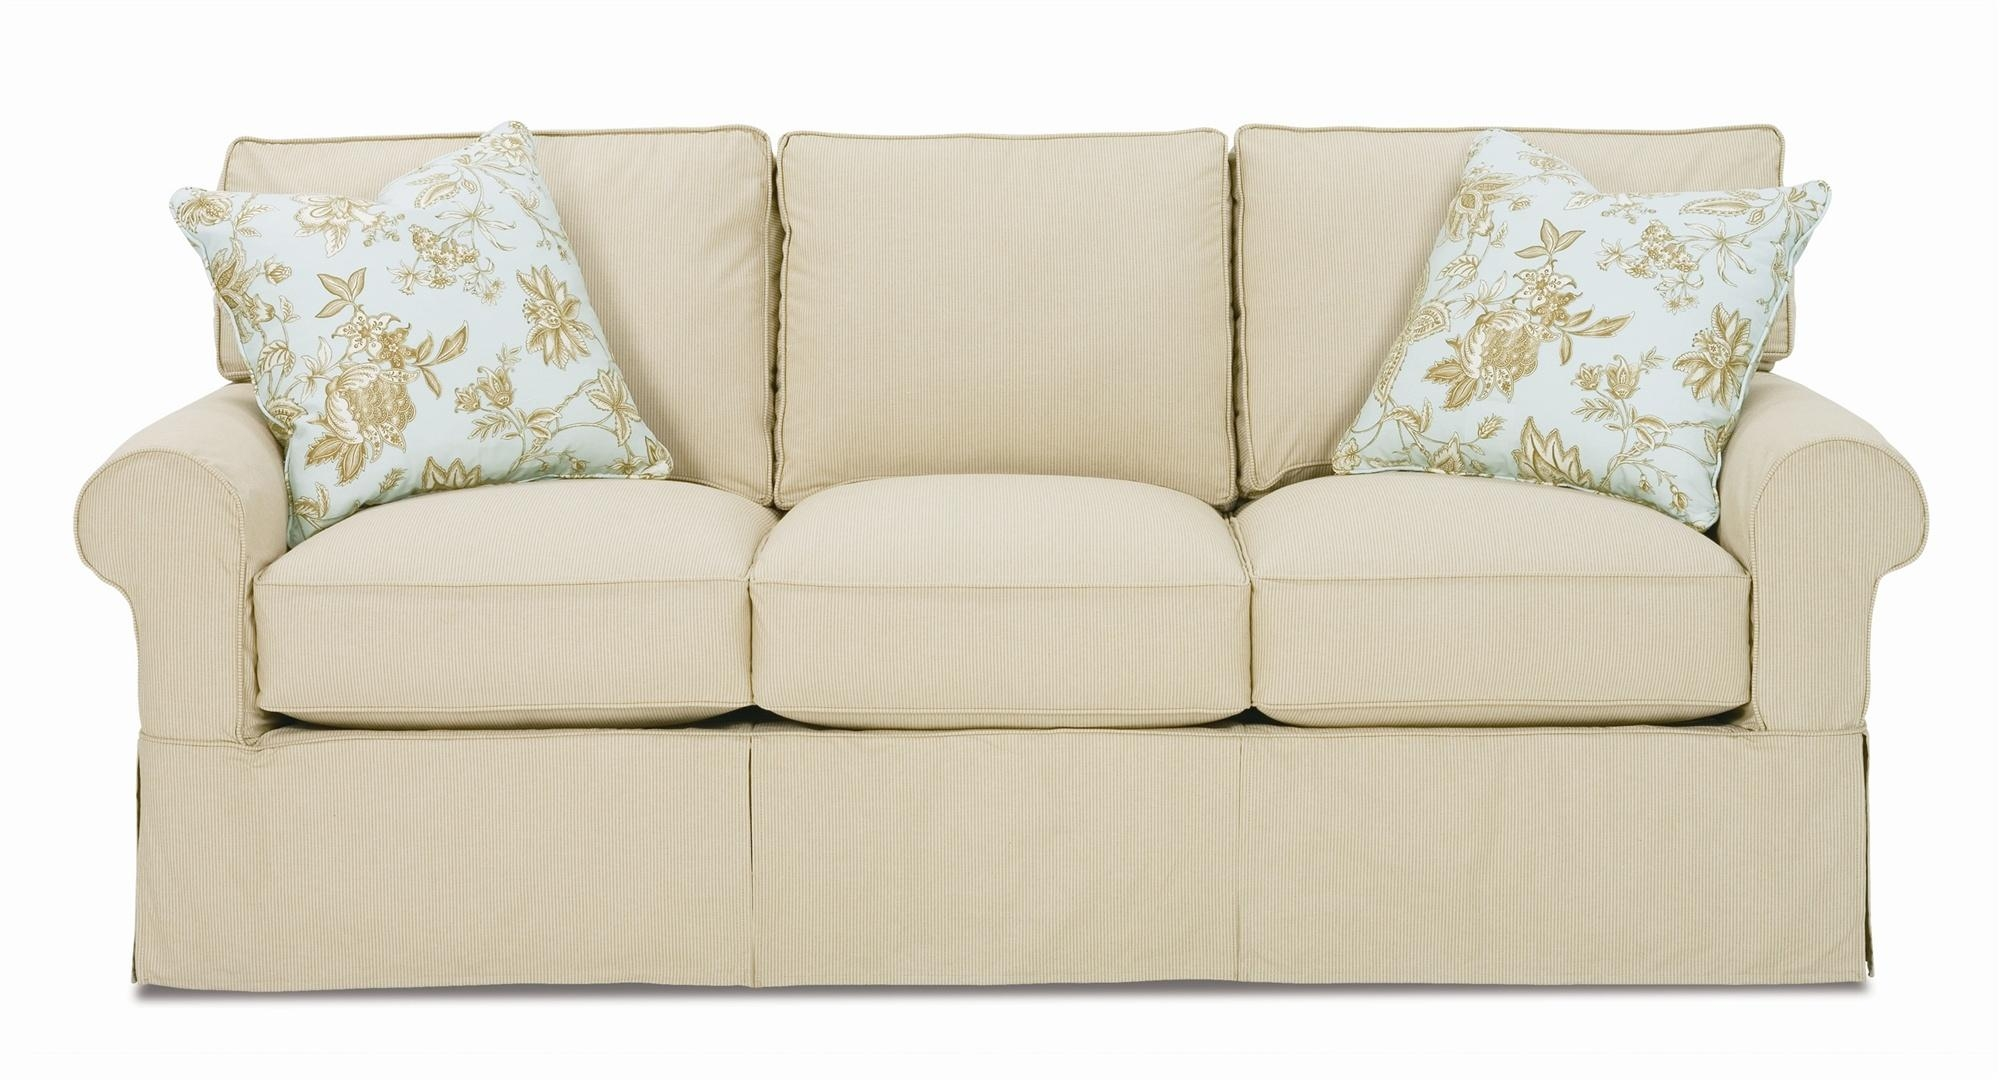 Quality Interiors | Sofa Slipcover | Chair Slipcovers for Slipcovers Sofas